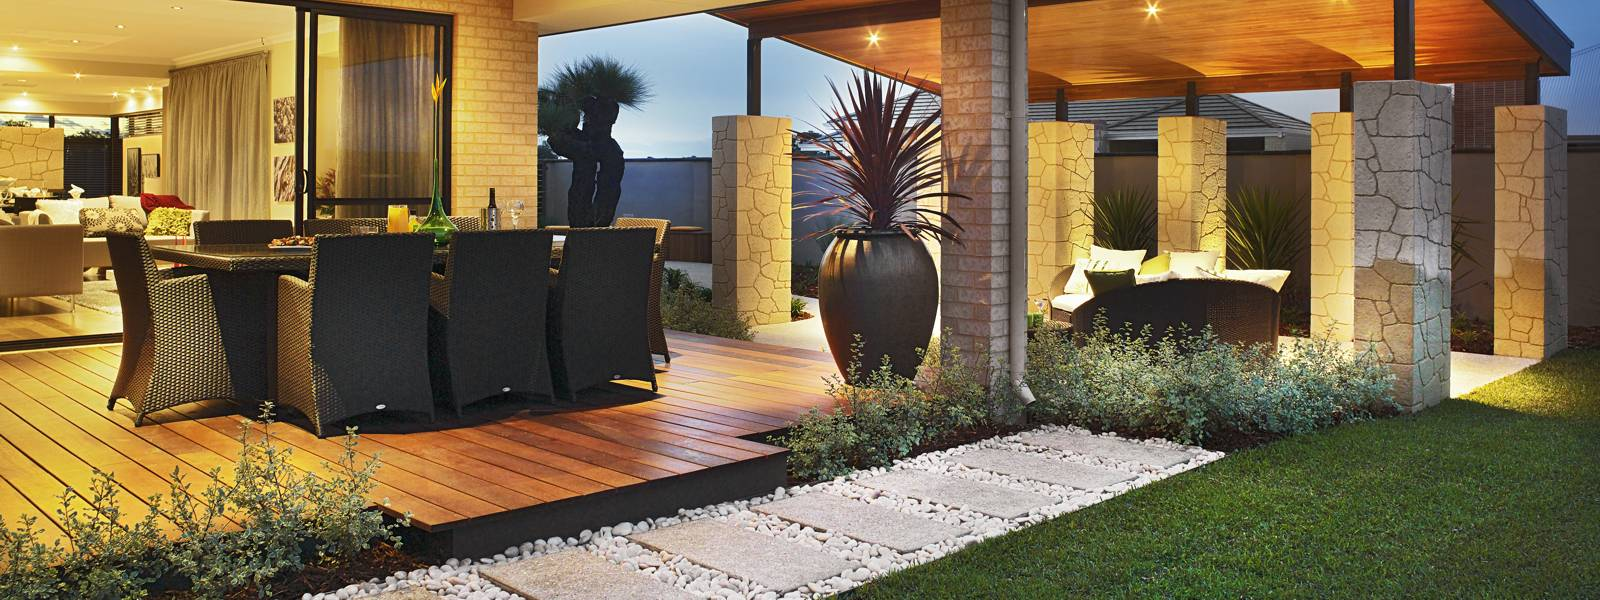 Landscapes WA Provides Landscape Design, Construction Services.